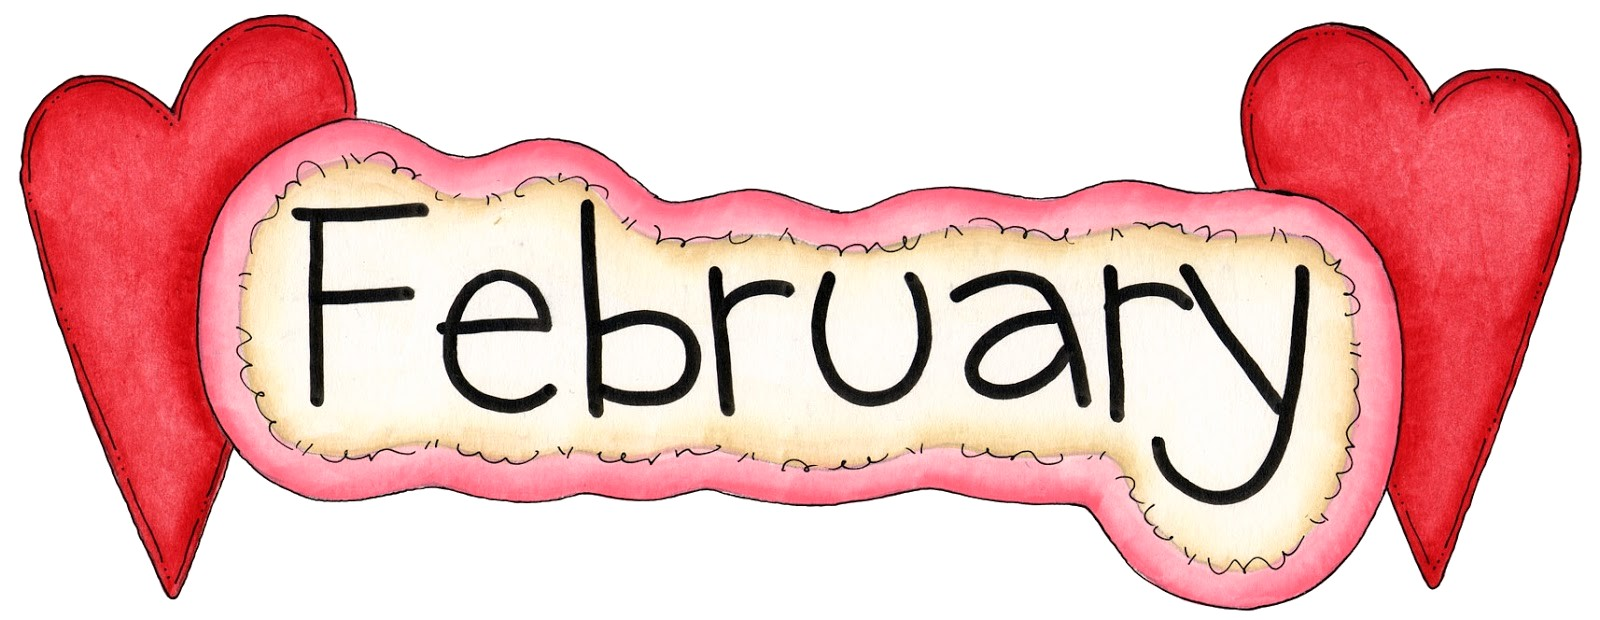 Bing february clipart 1 » Clipart Station.